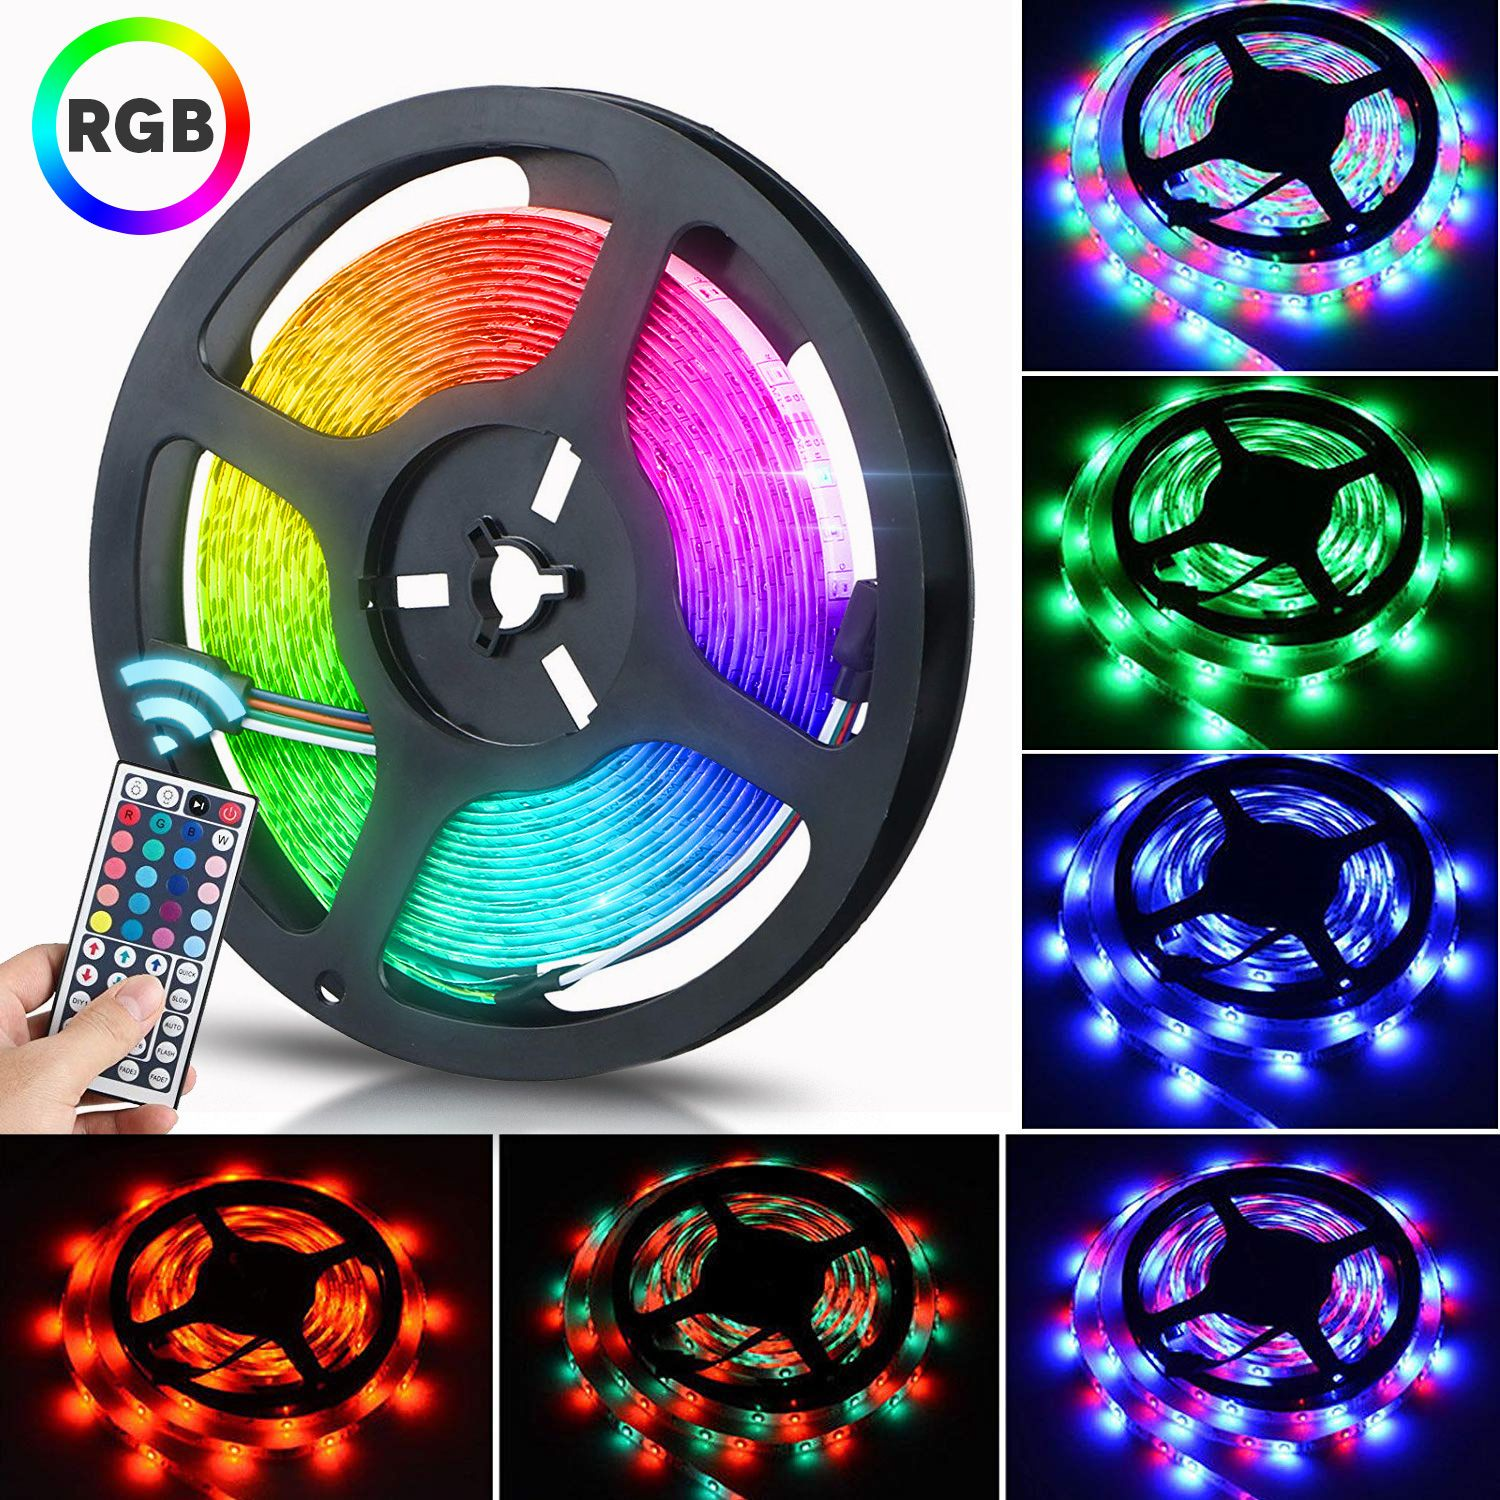 Eeekit 16 4ft 300 Led 3528smd Led Strip Lights Multi Color Changing Led Rope Lights For Bedroom With 44key Remote 12v Dc Power Supply For Home Room Office De In 2021 Strip